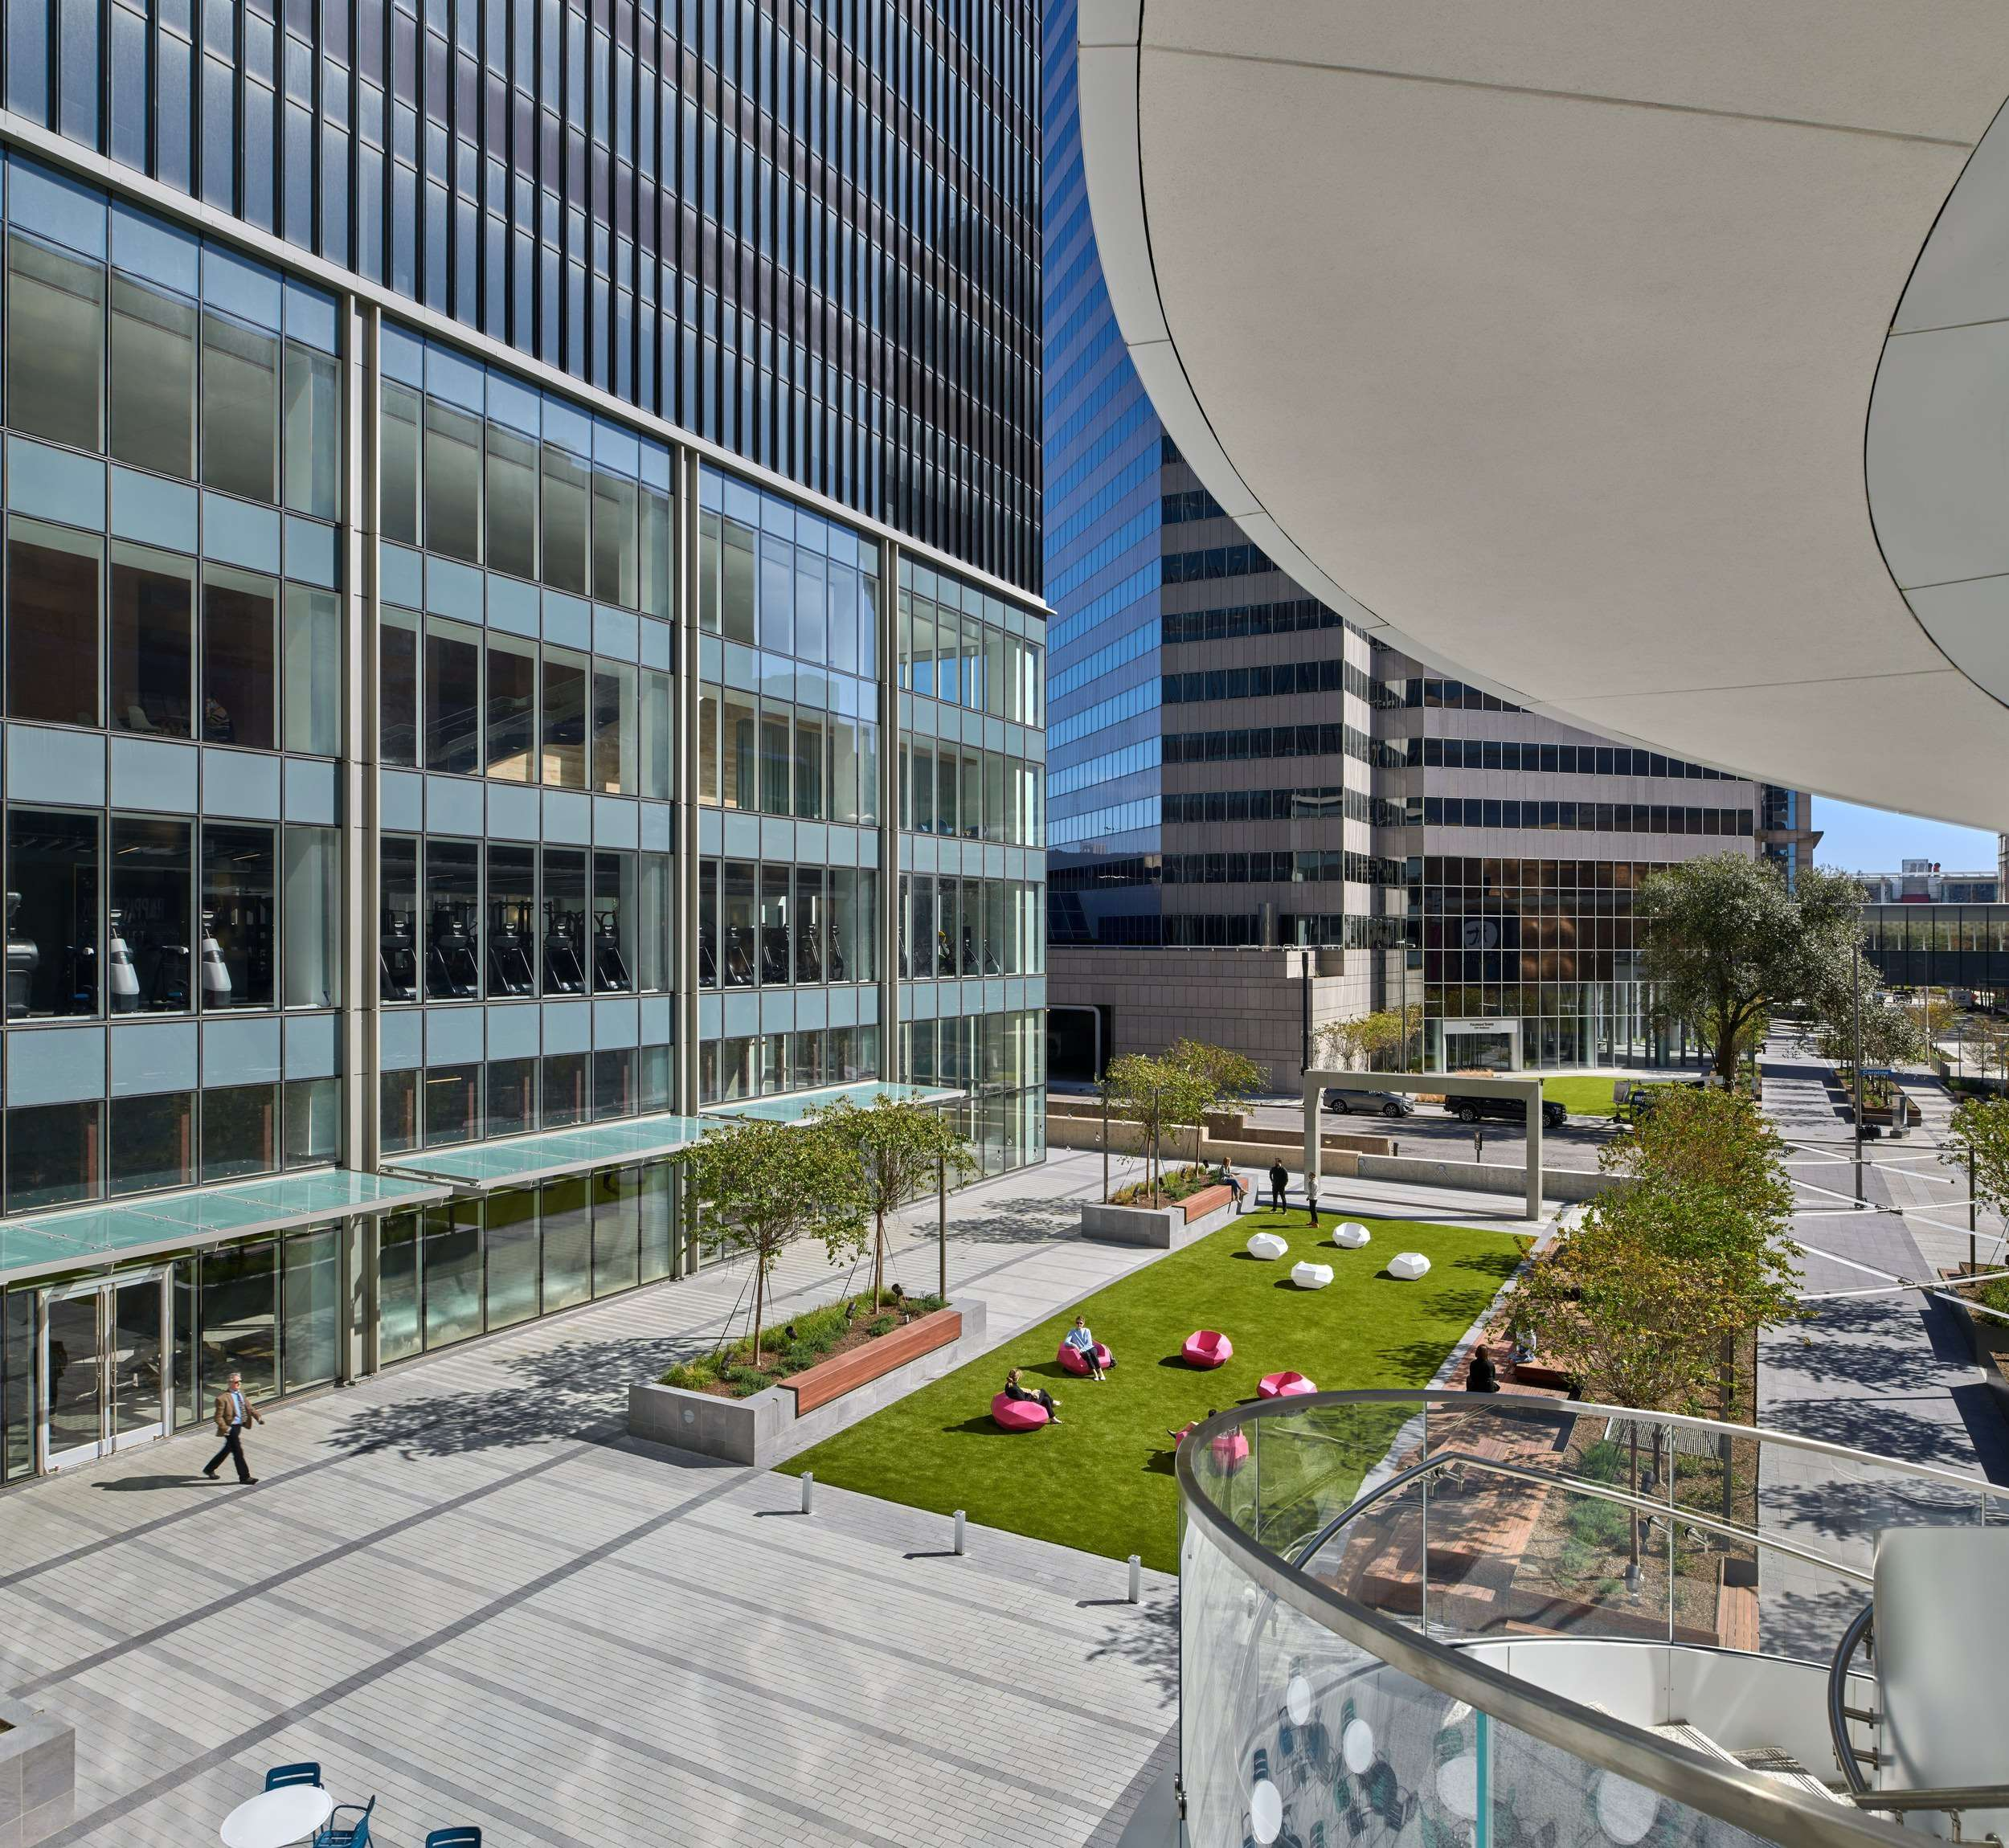 A view of a park that is in front of a large glass building and it has chairs sitting on the grass o